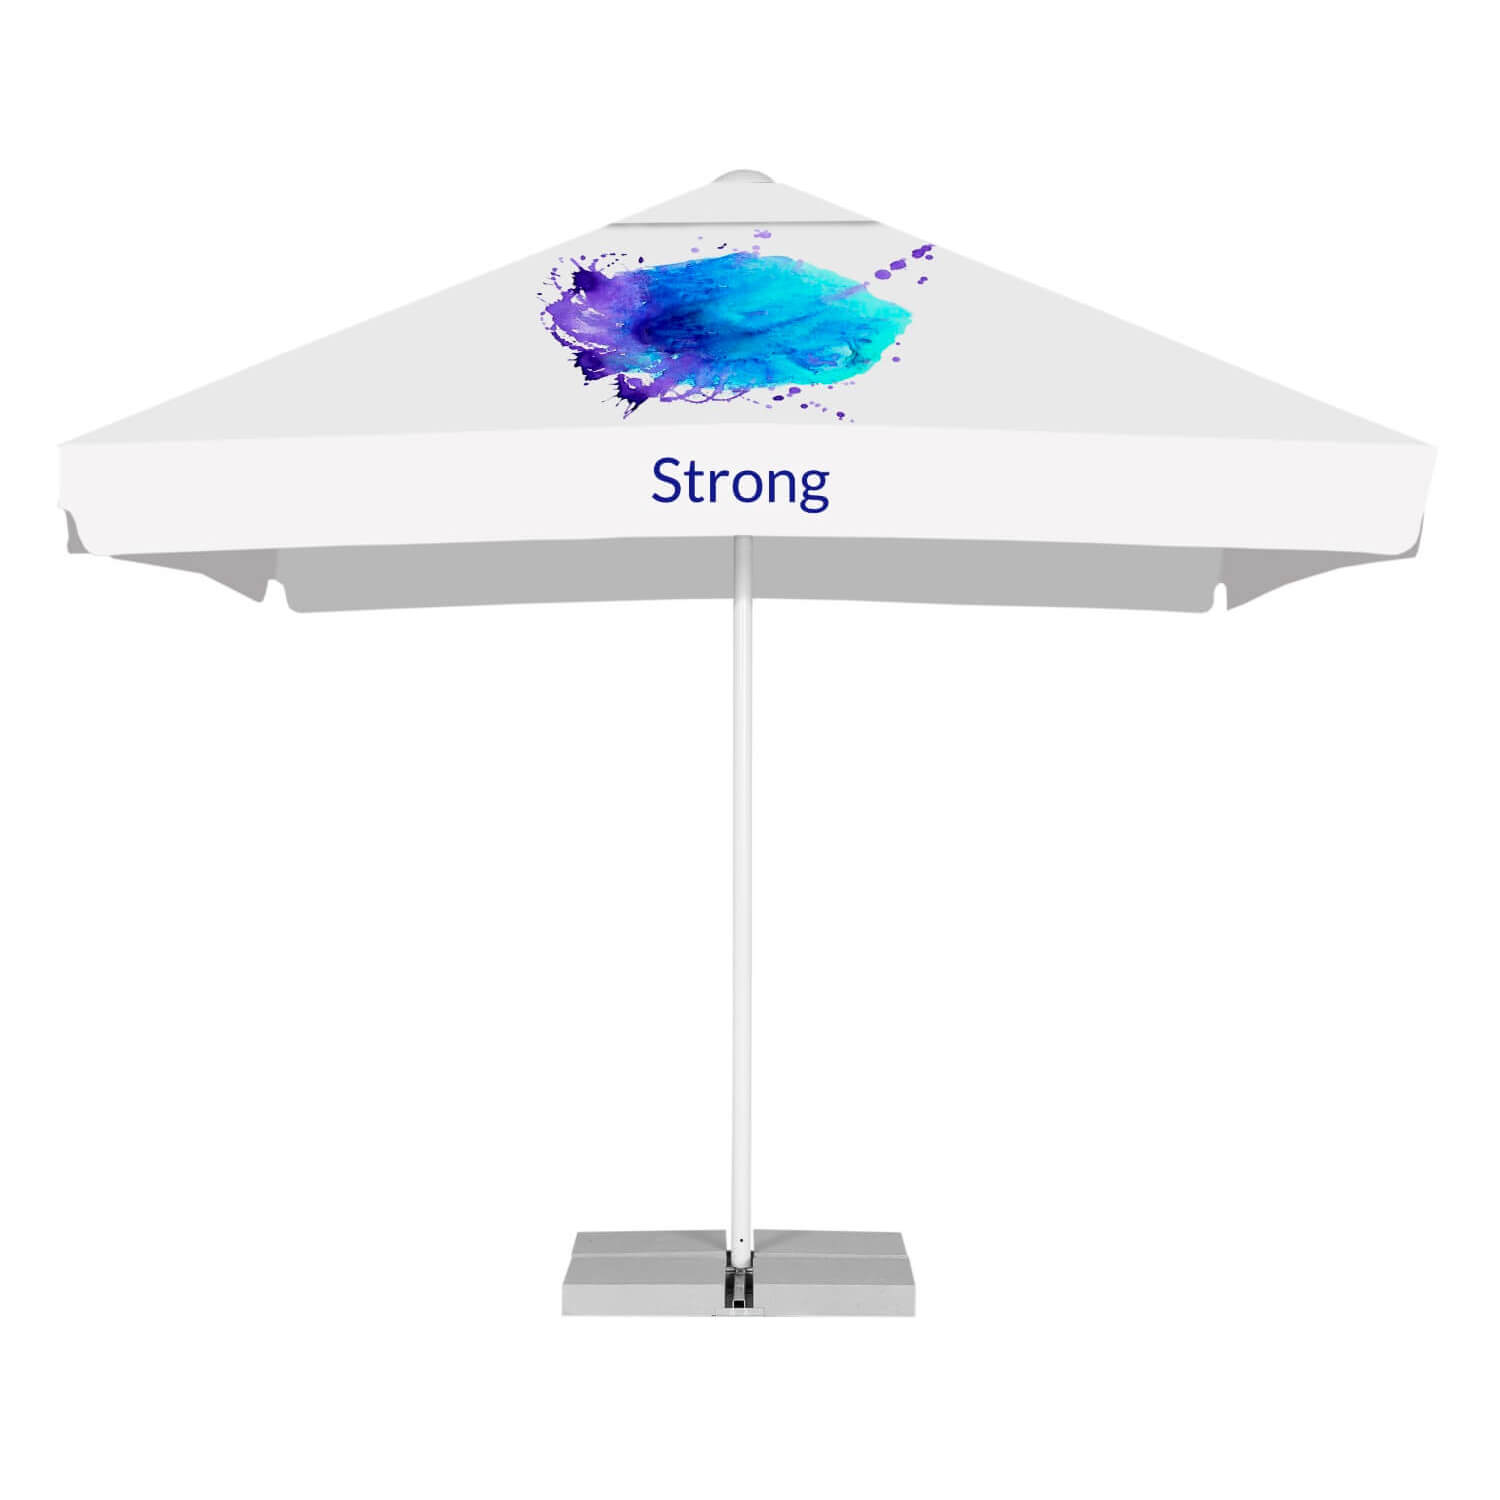 6. Large strong parasol